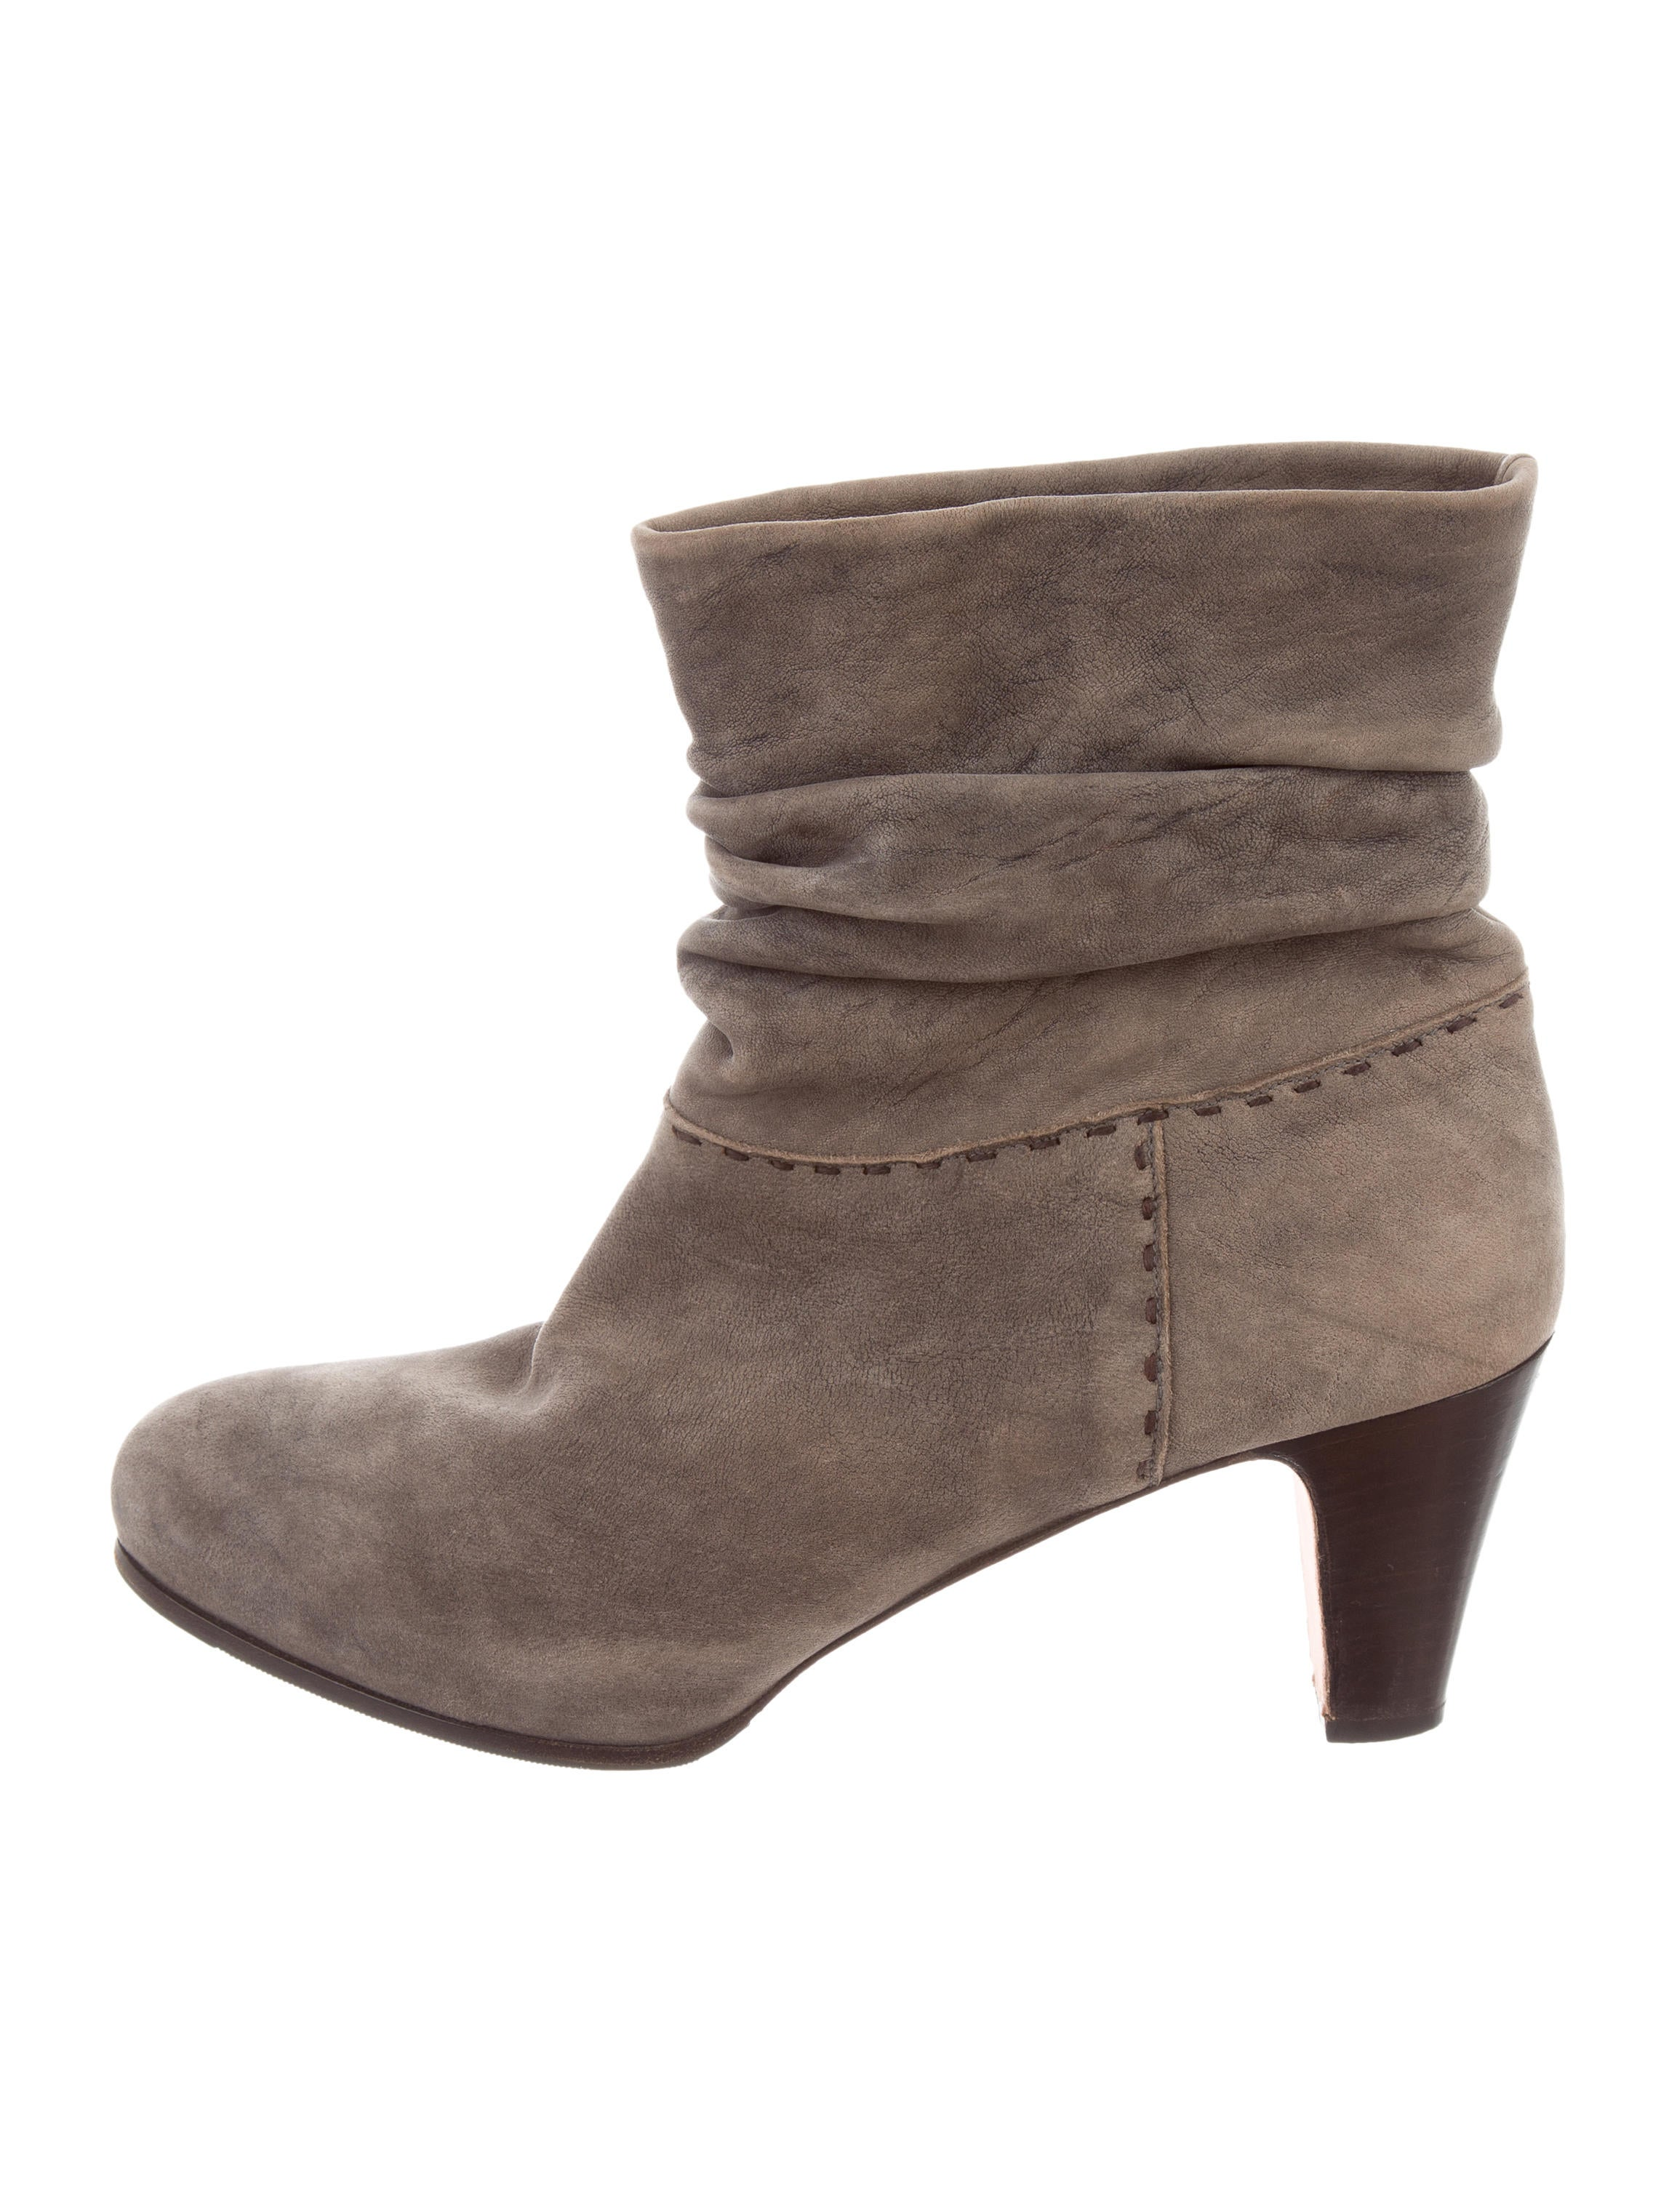 authentic for sale Cheapest online Henry Cuir Suede Ankle Boots outlet best sale 2014 new sale online cheap sale enjoy saKlMO27